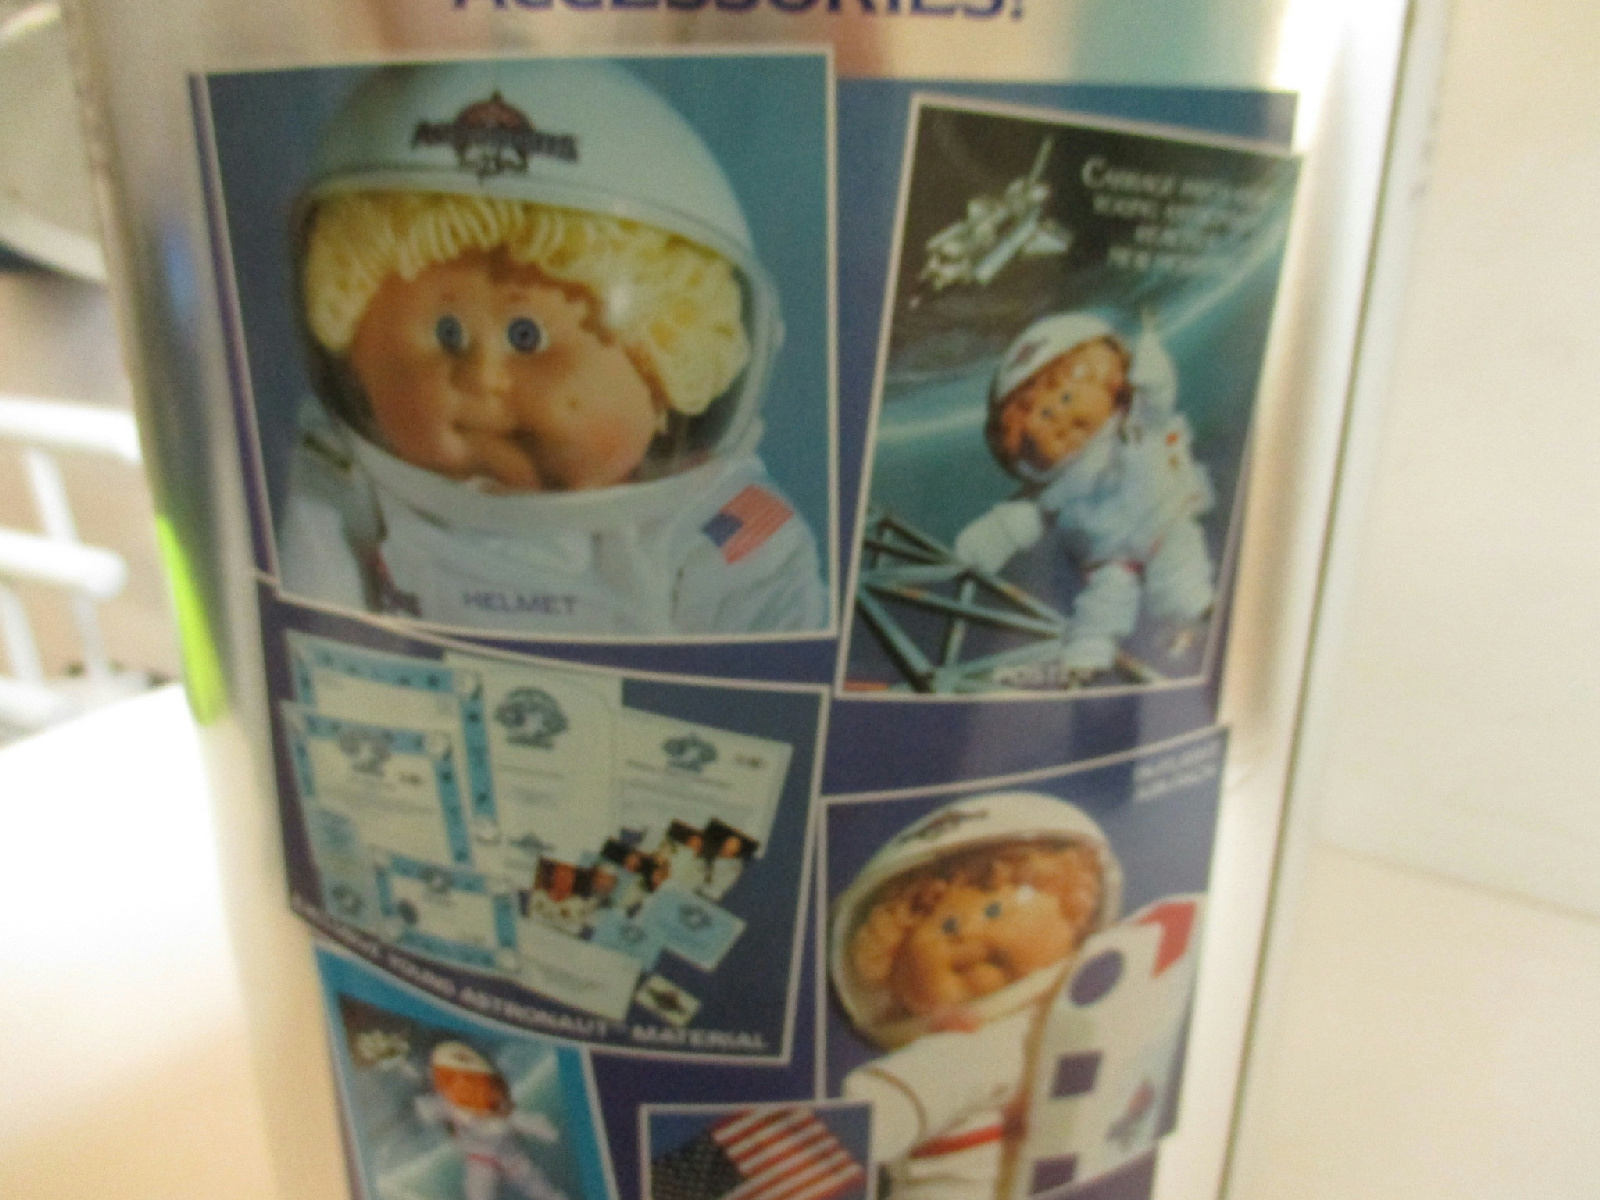 young astronauts cabbage patch doll - photo #26